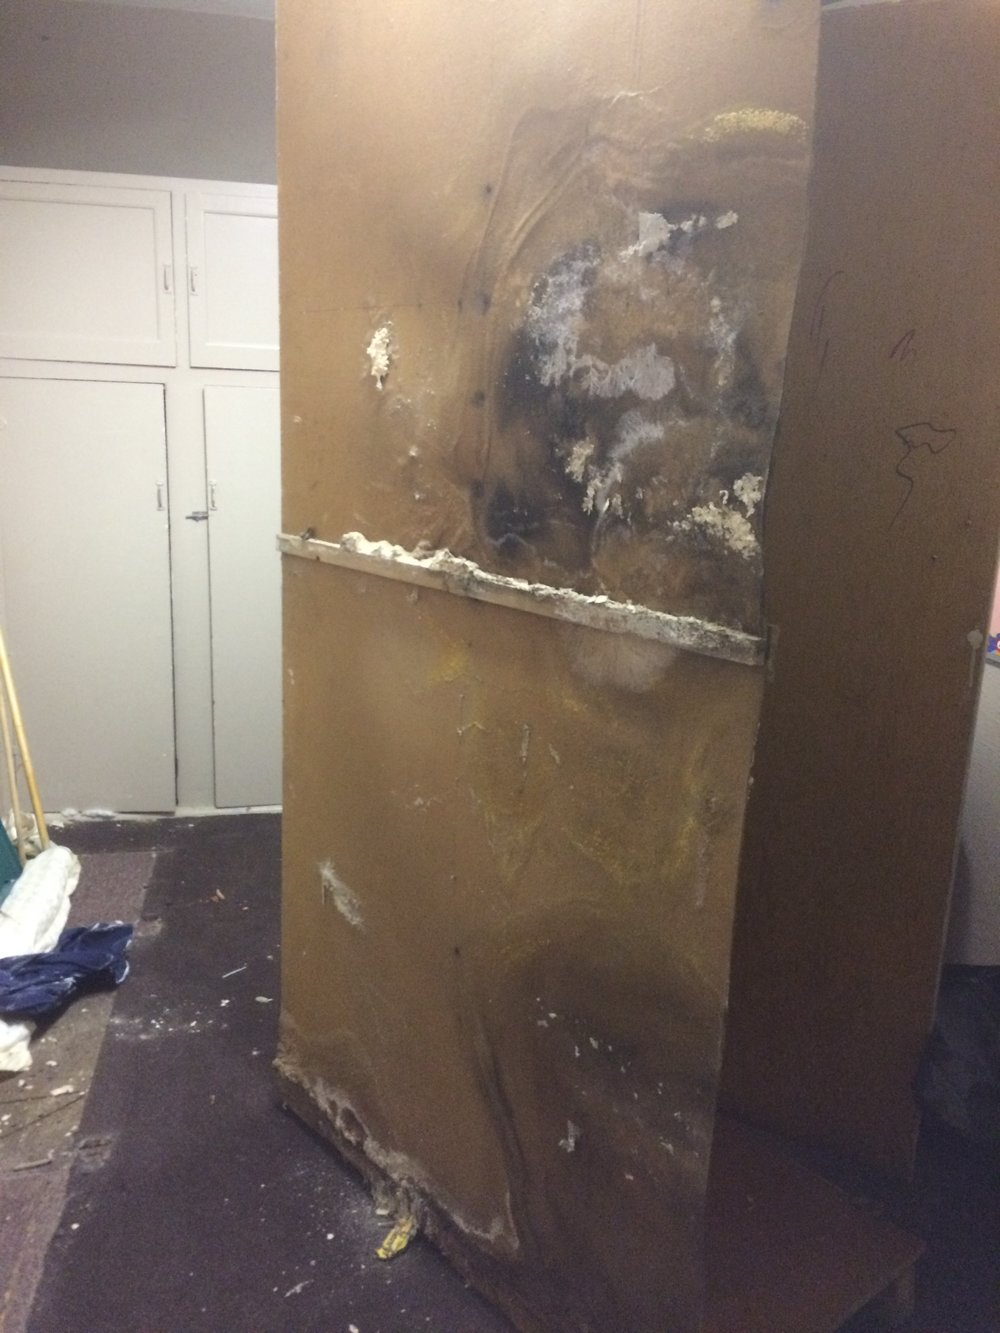 Mould and mildew had penetrated into the cabinets: Supplies stored inside were so infected, they, too, had to be thrown away. Here you can see seepage was at both the higher groundlevel outside and at the footing level on the bottom.